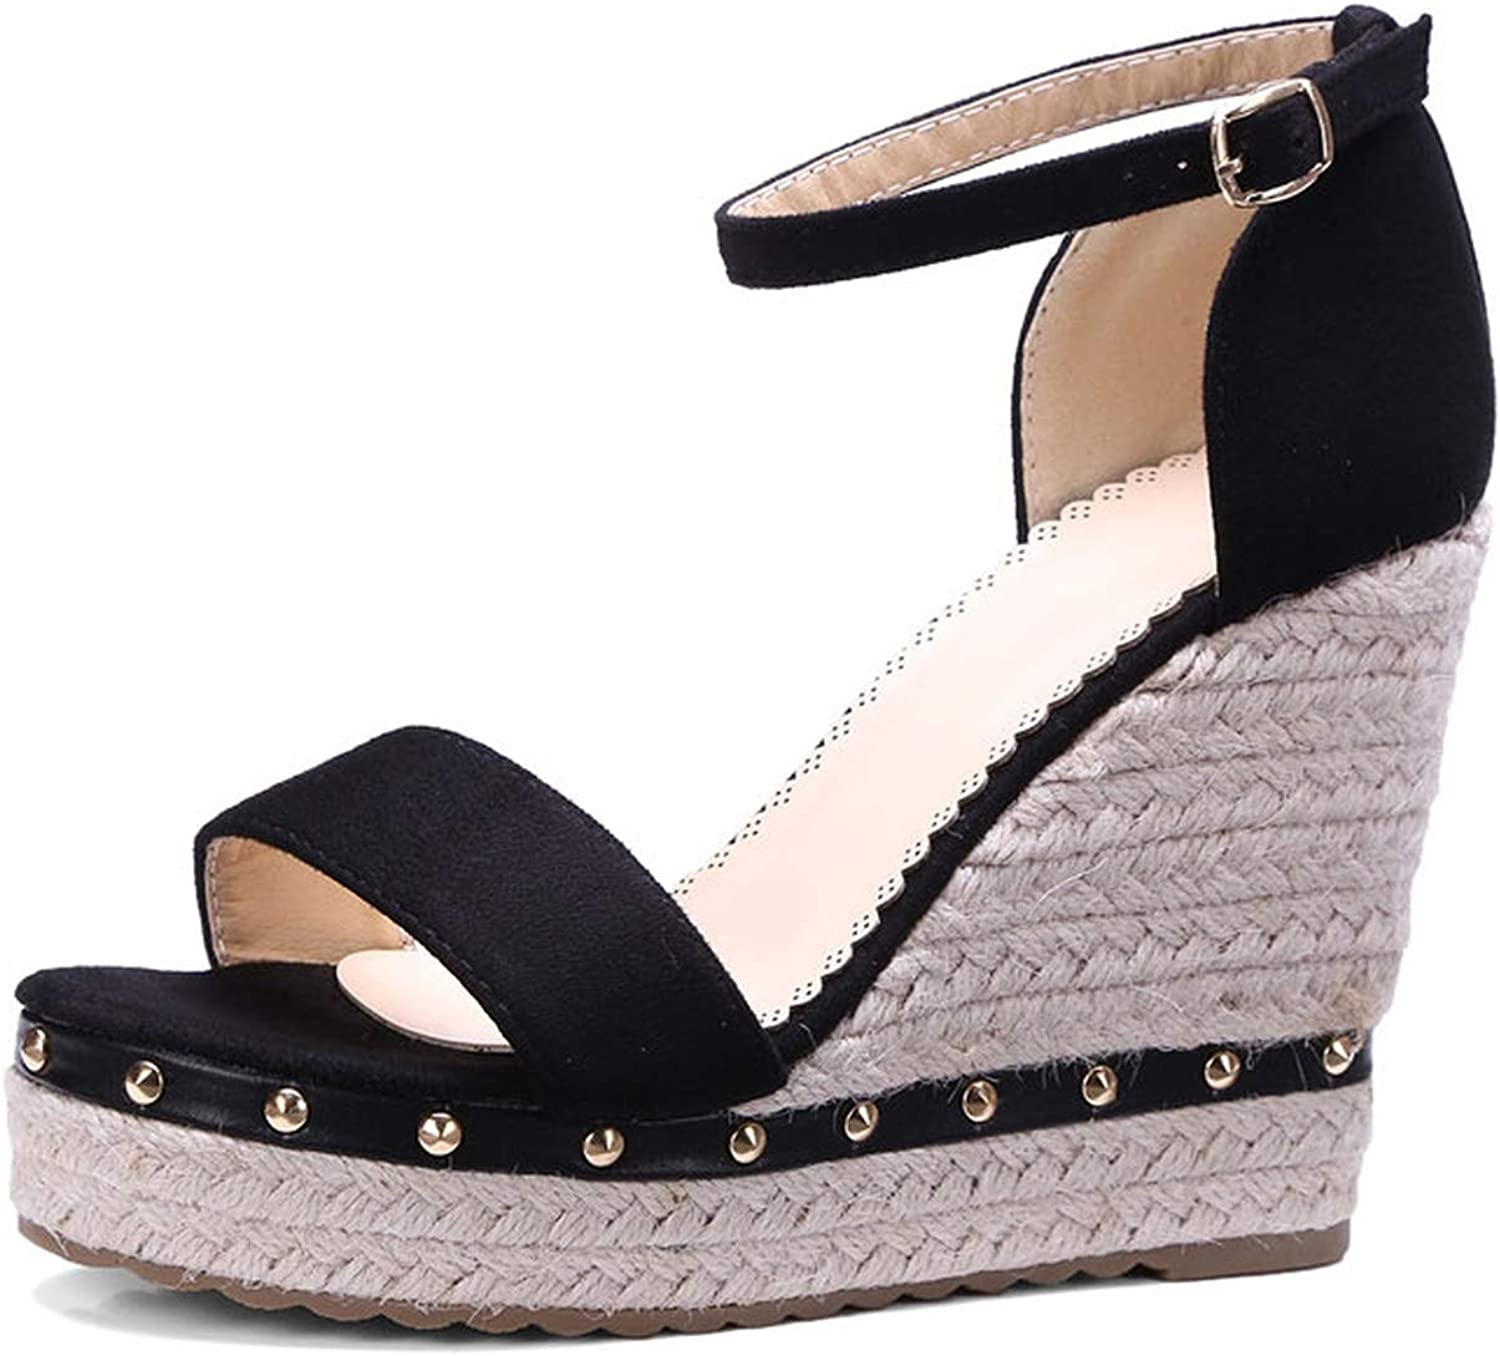 Solid Wedges High Heels Summer Cover Heel Sandals Concise Ankle-Wrap Women shoes Buckle Sandals